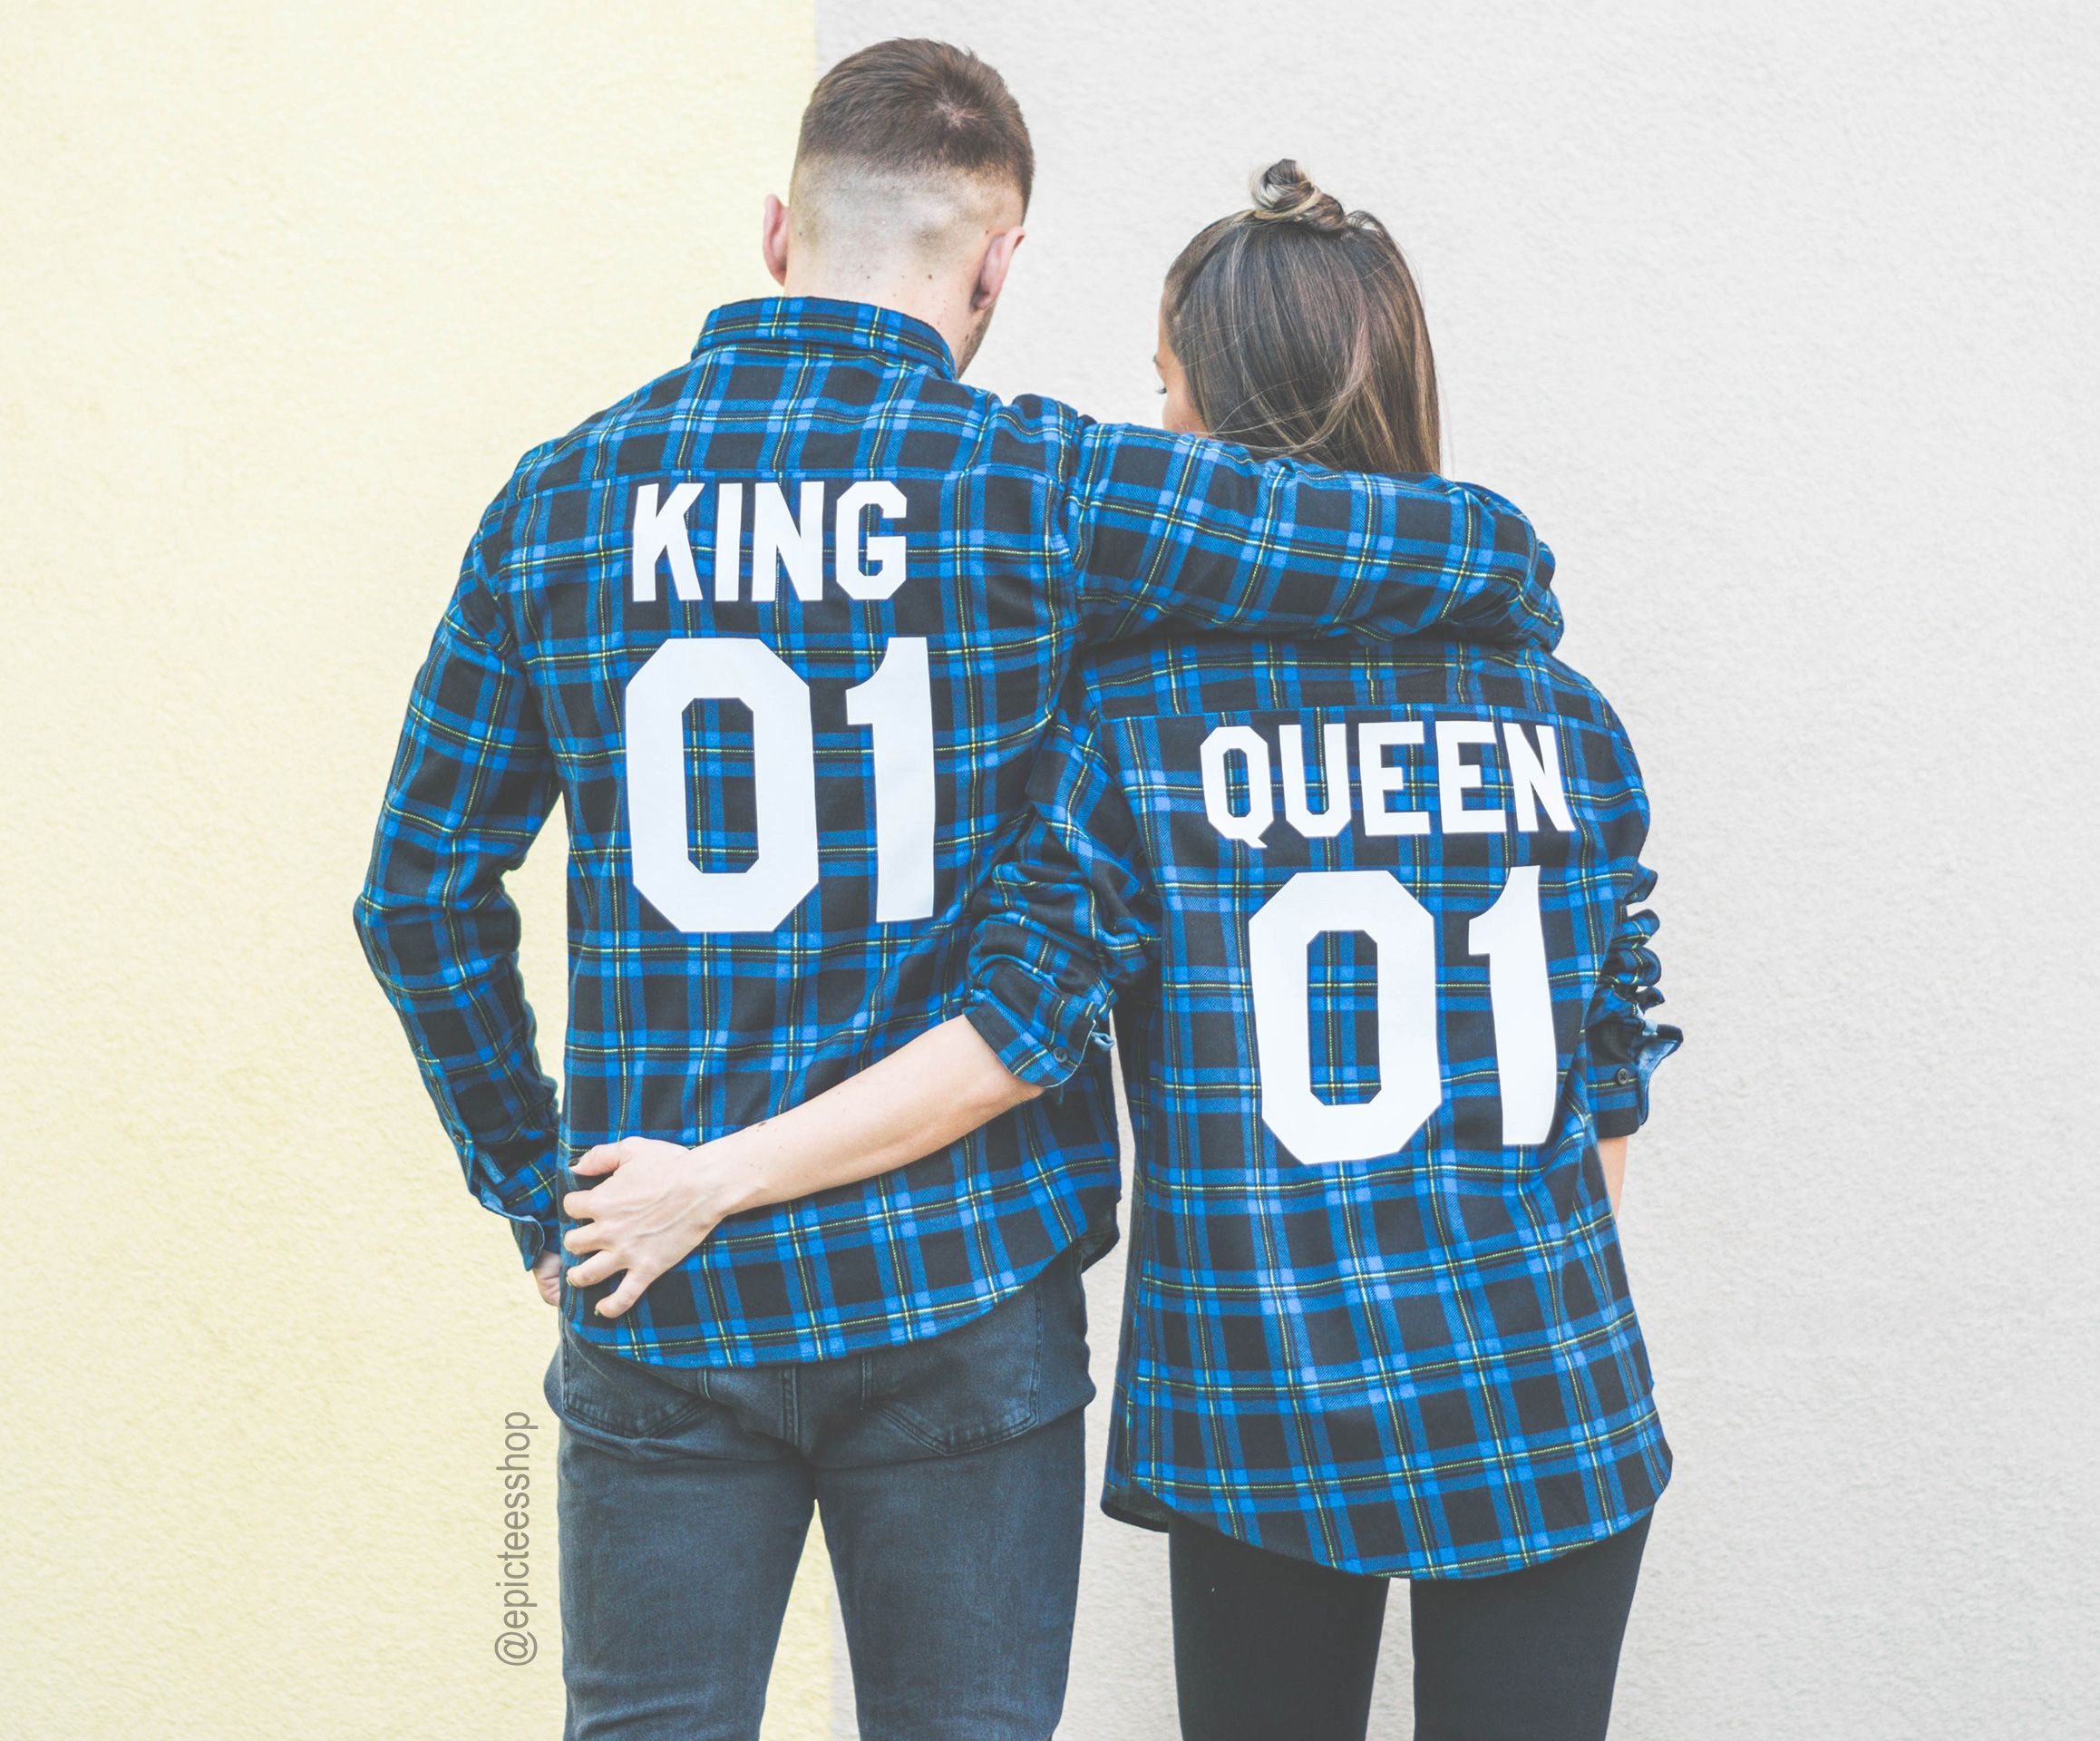 King 01 Queen 01 Red and Blue Flannel Shirts, Flannel Shirts for Couples, Red Flannel Shirt, Flannel Shirts, Matching, UNISEX